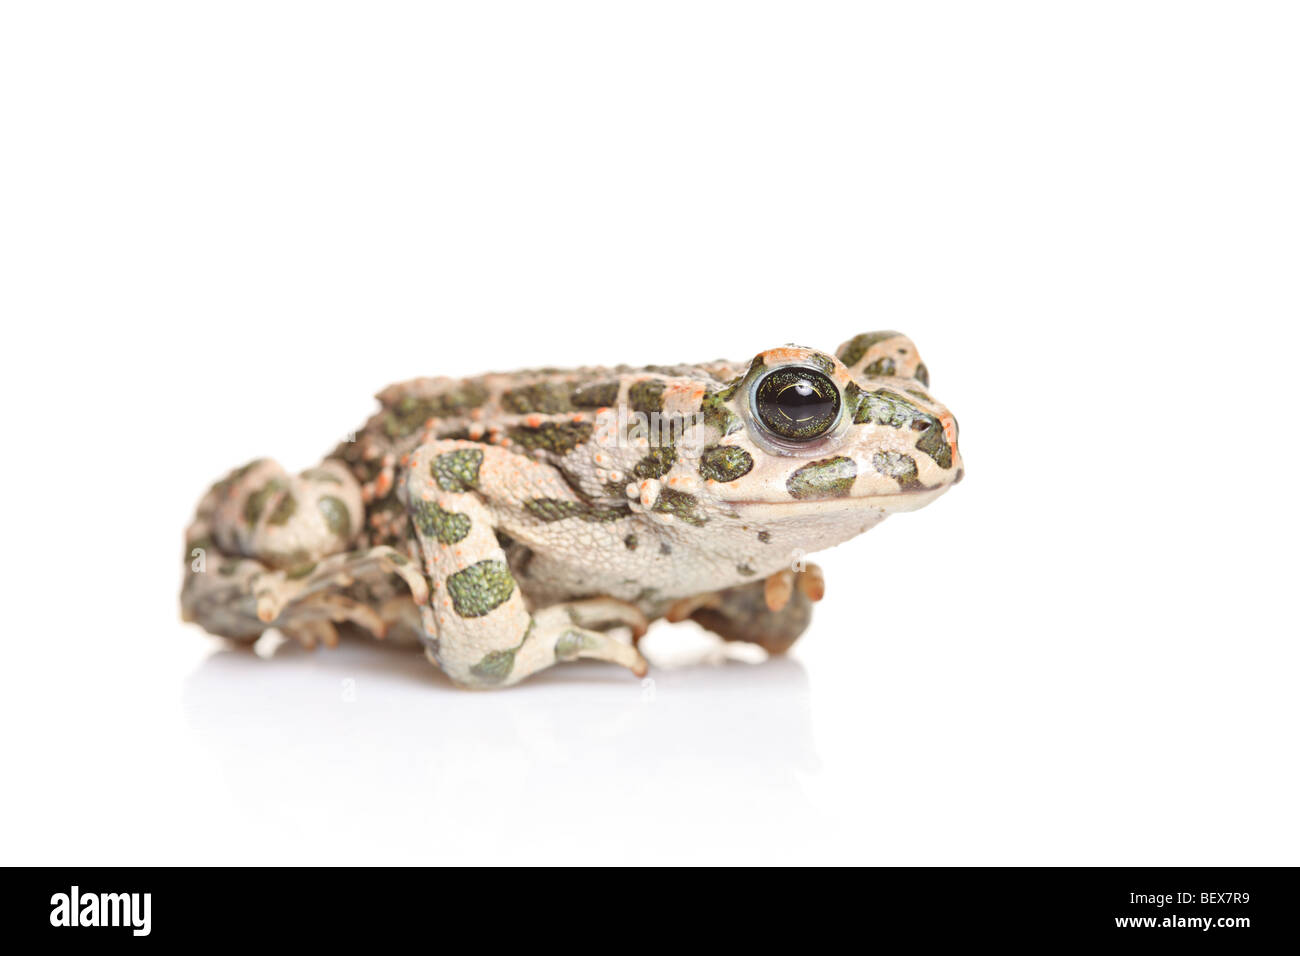 A frog isolated on white background - Stock Image